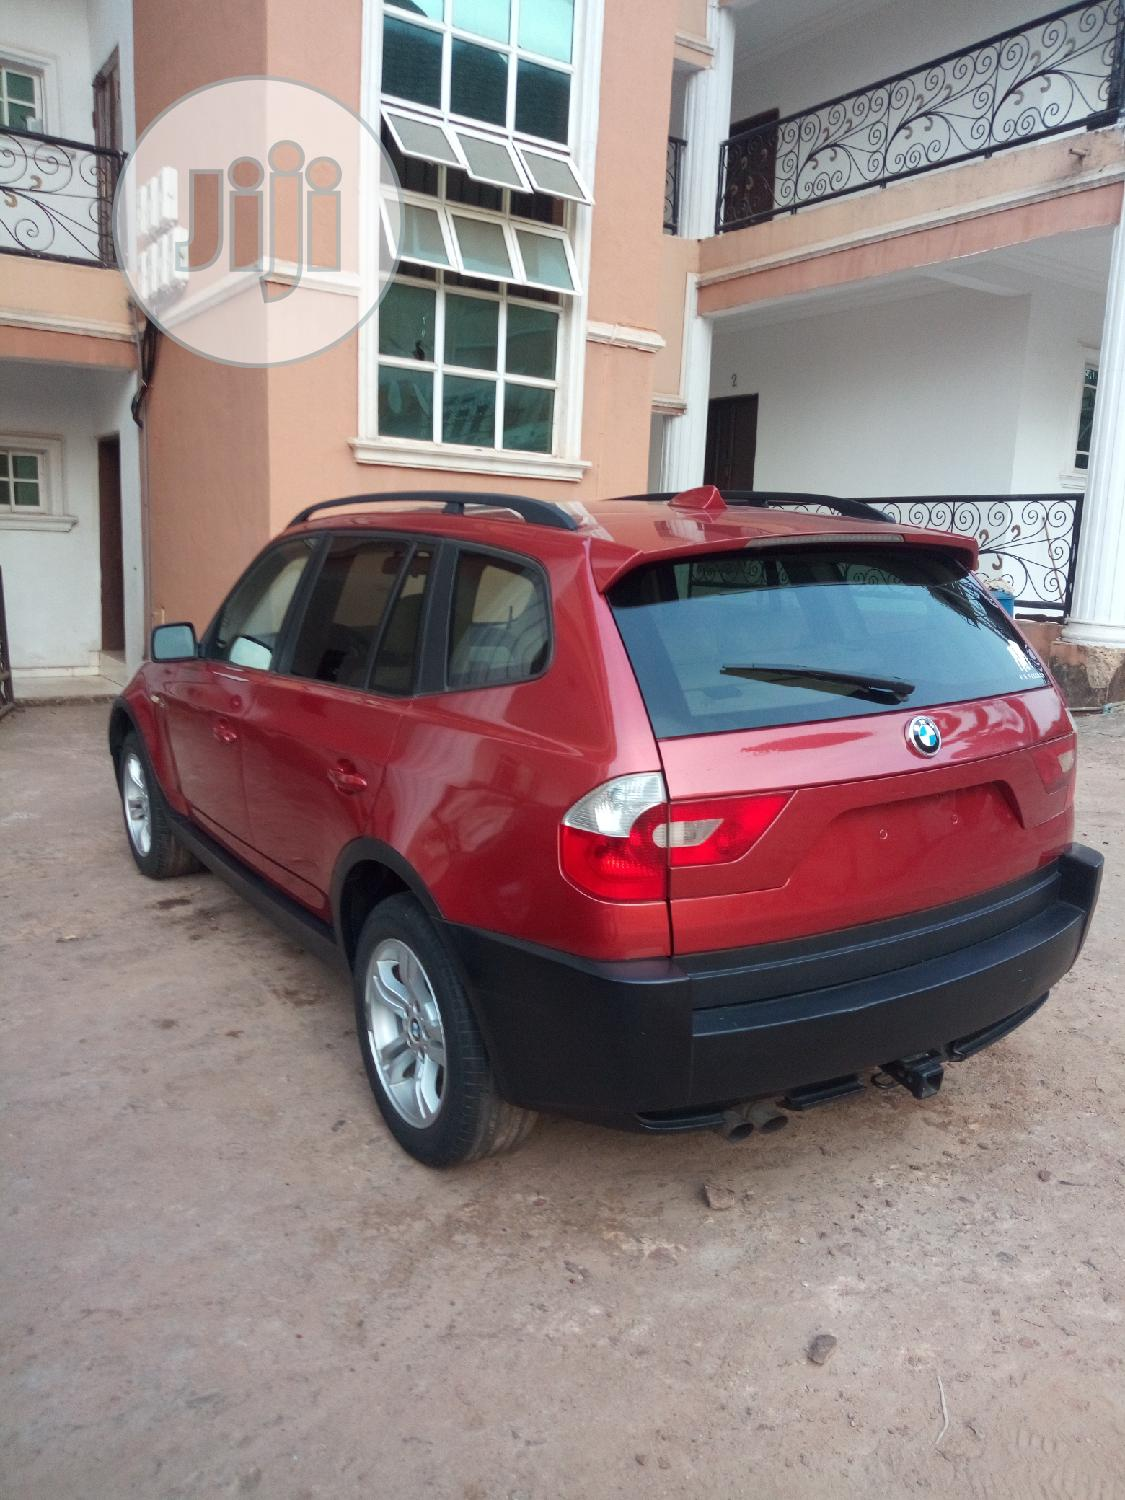 Archive: BMW X3 2005 Red